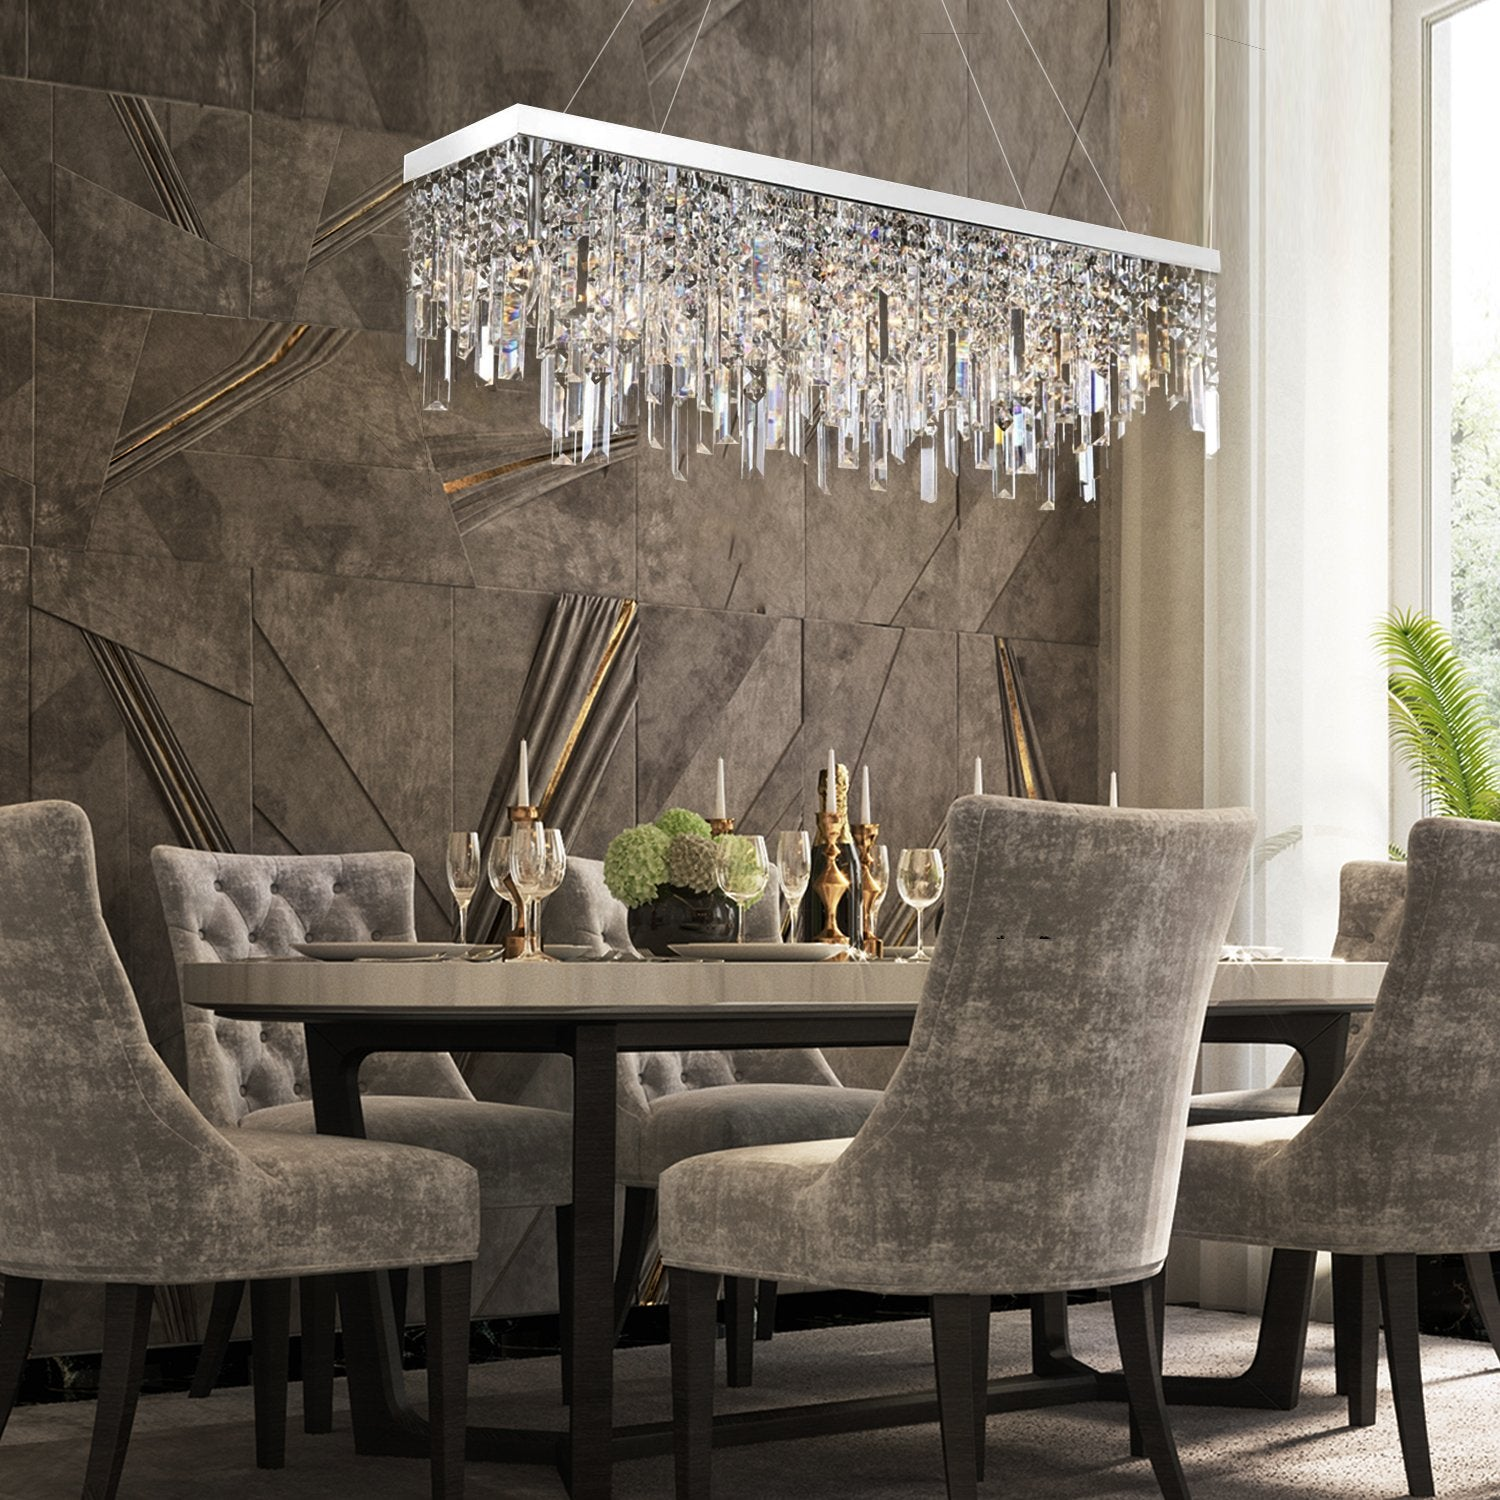 Rectangle Crystal Chandelier Modern Lighting With Linear Design